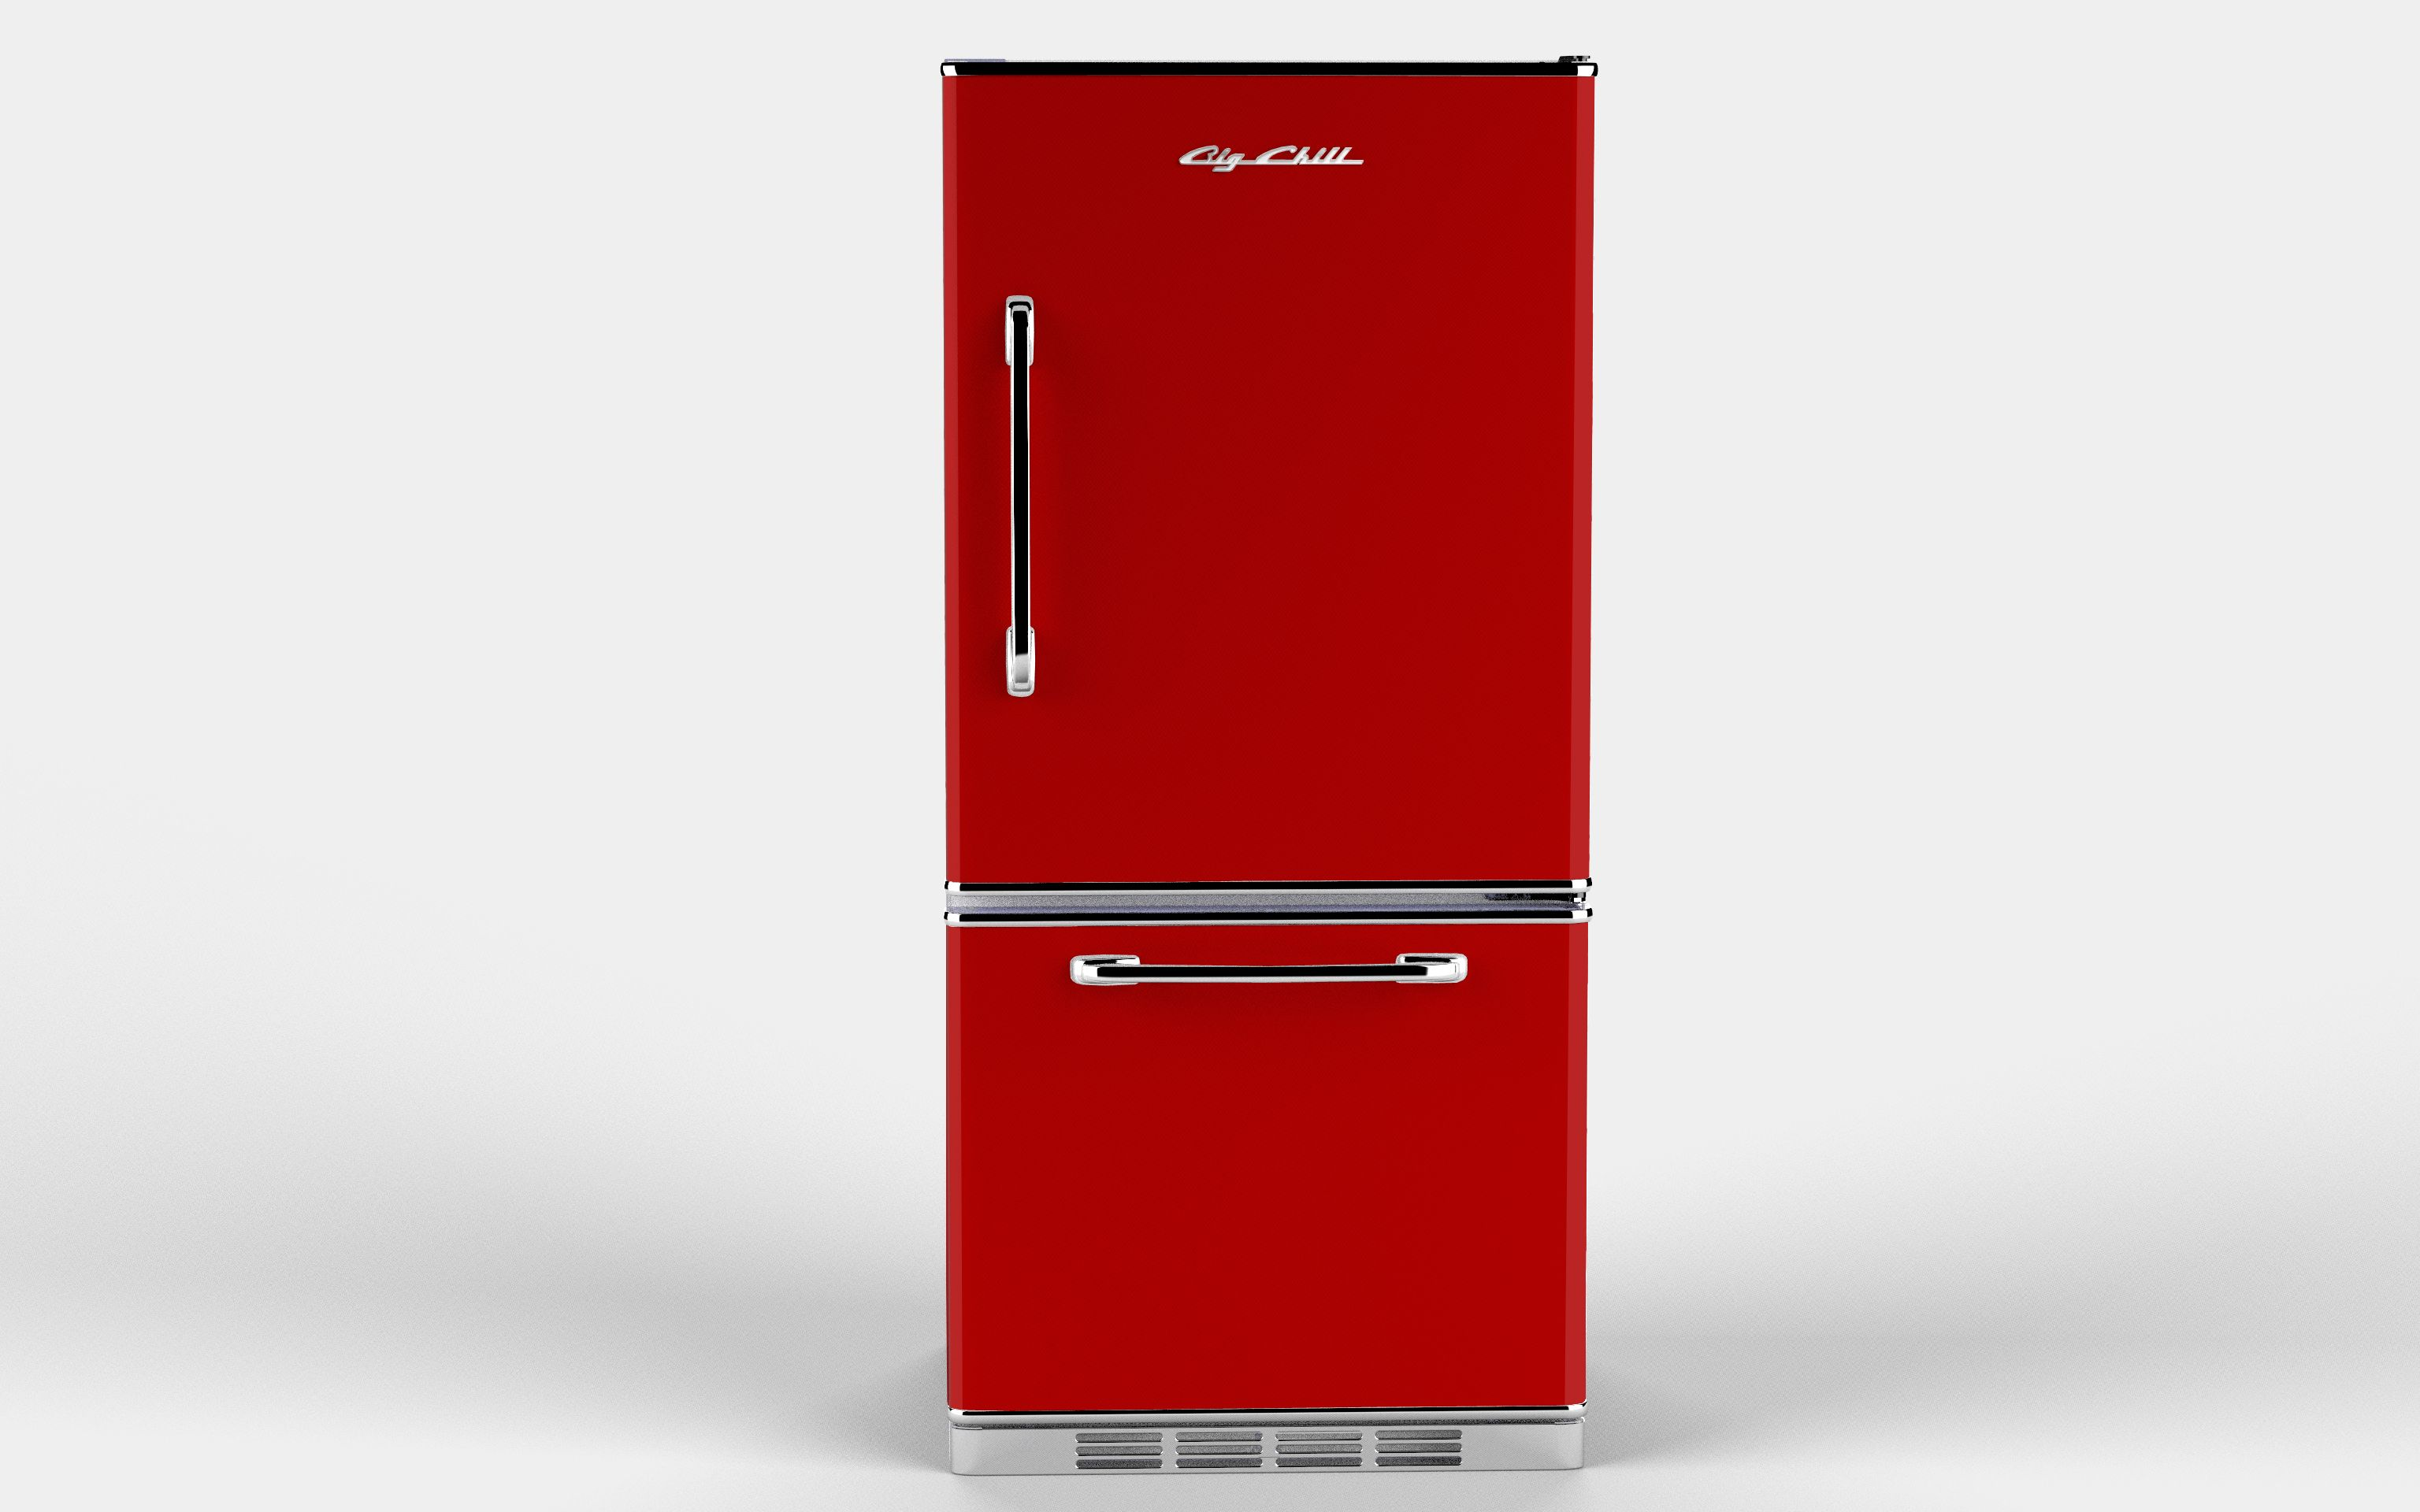 Retro Kühlschrank Big Chill : Red retropolitan refrigerator by big chill my big chill kitchen